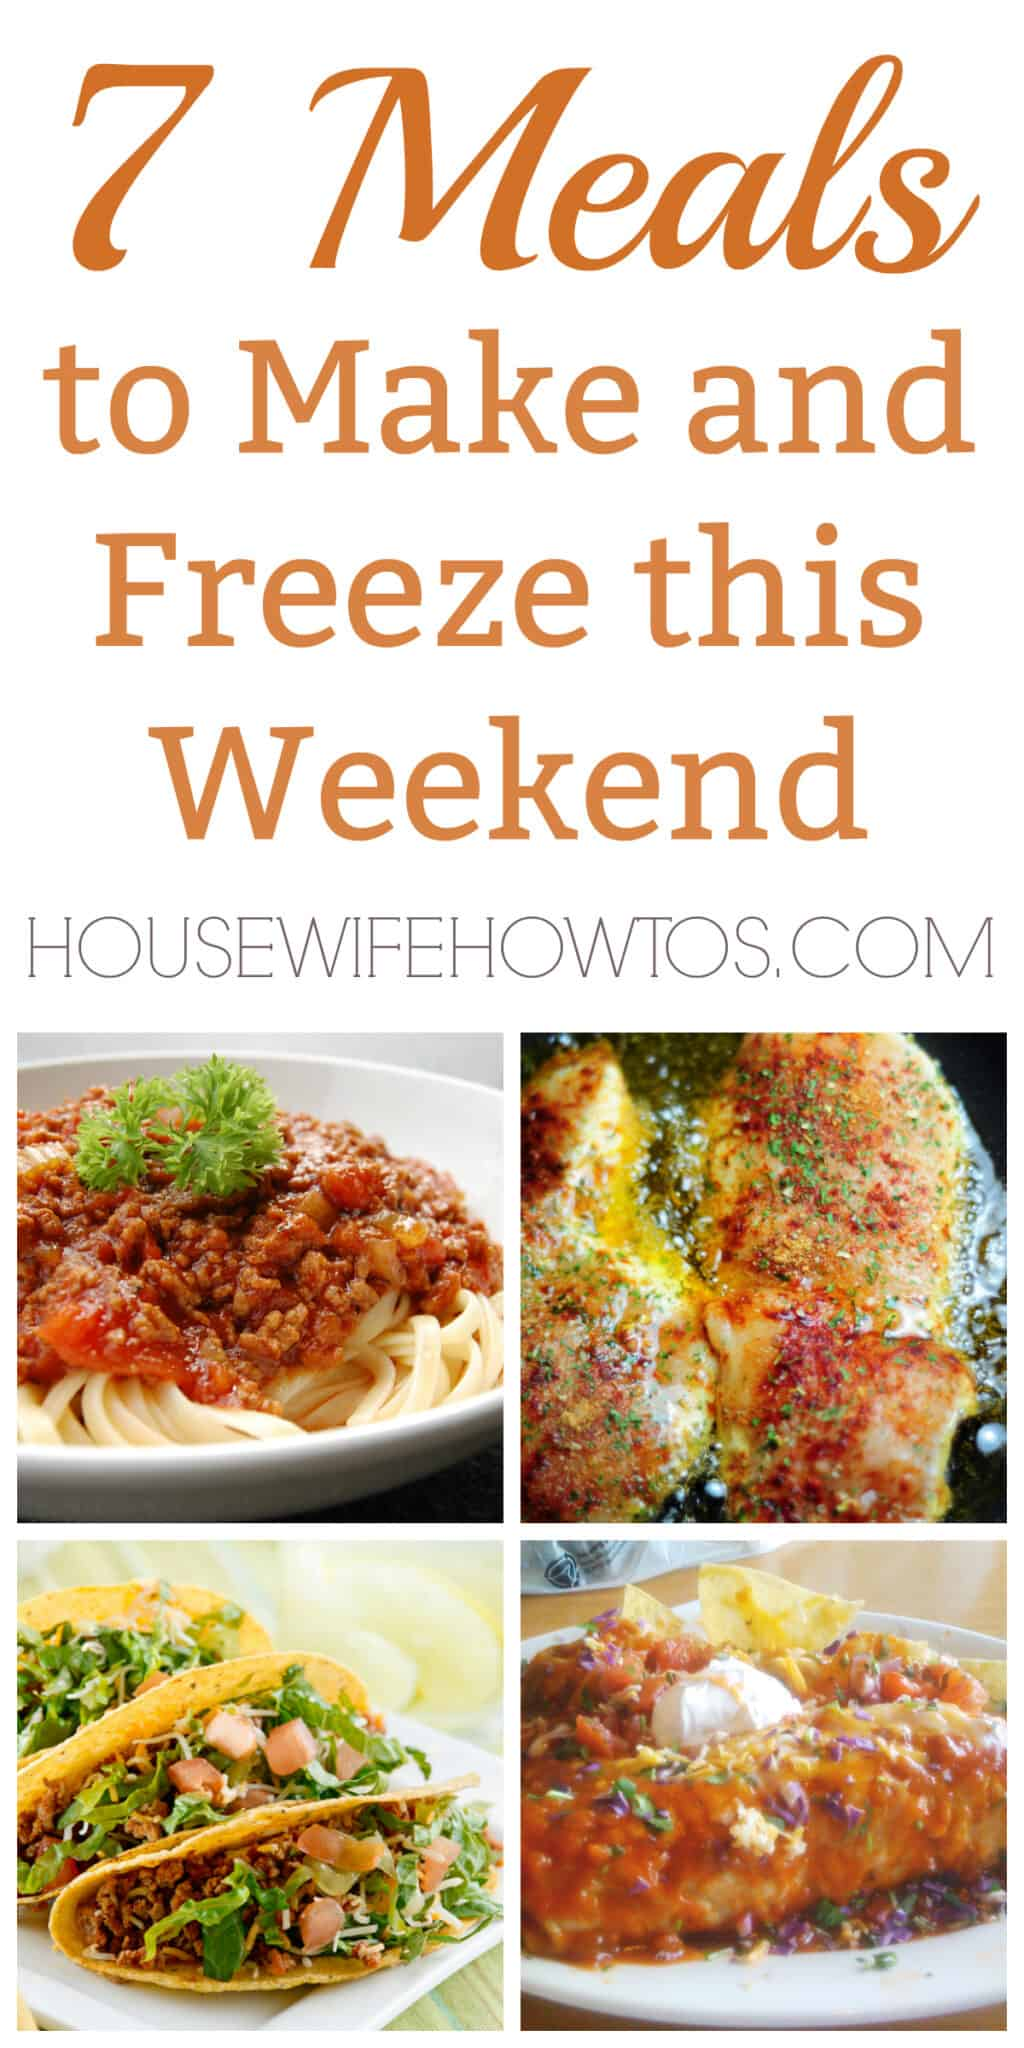 Meals to Make and Freeze this Weekend - Get a jumpstart on dinners for the week with this easy-to-follow cooking plan #cooking #cookingtricks #cookingtips #mealprep #menuplanning